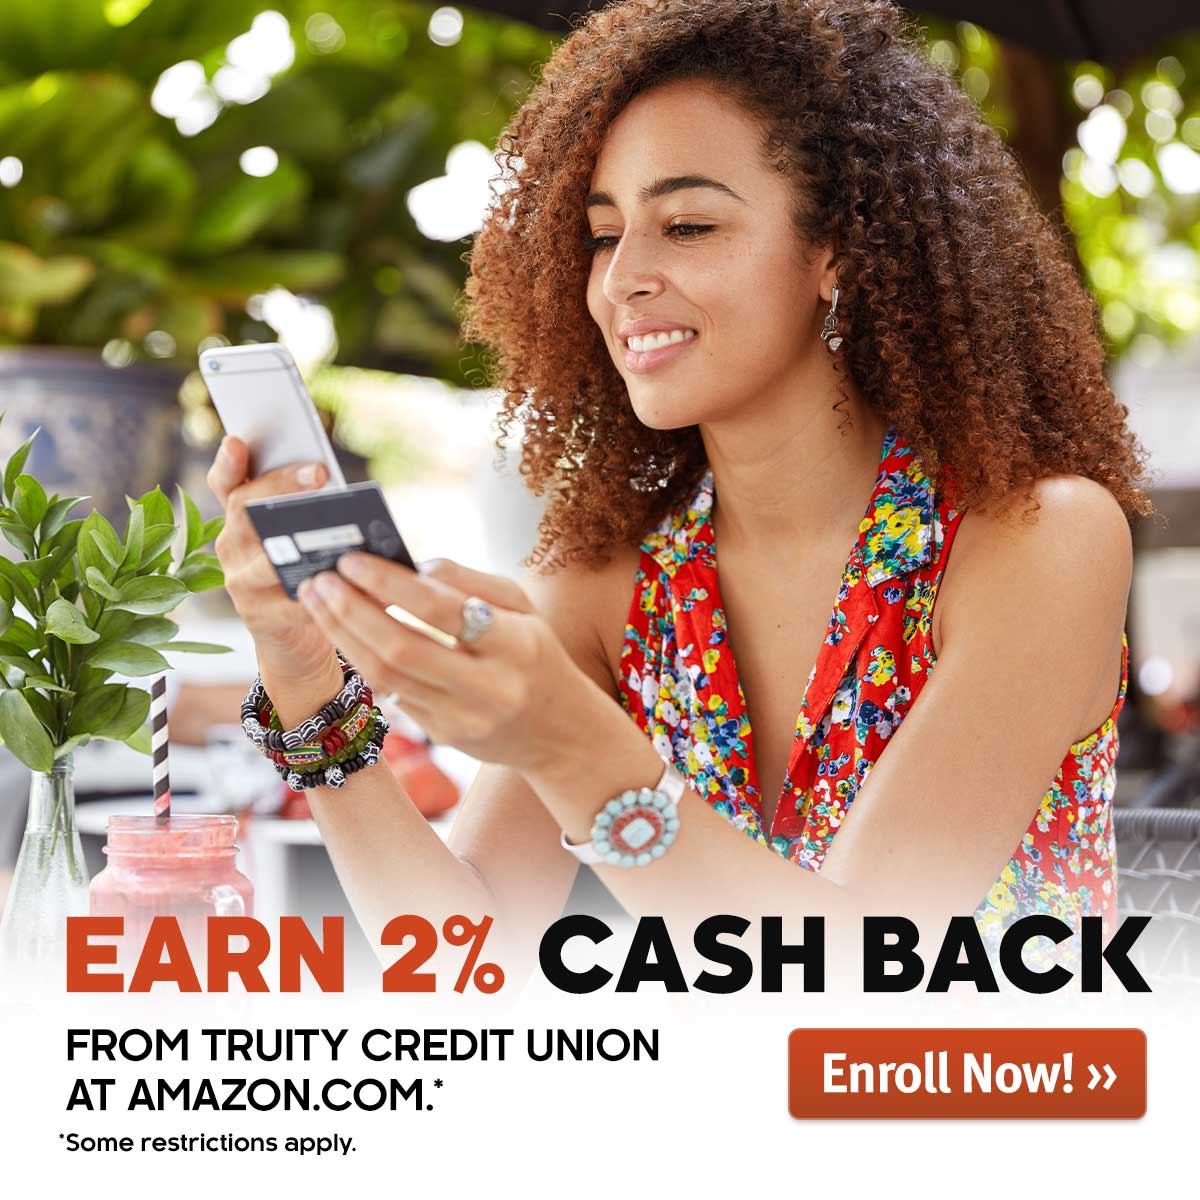 Earn Cash Back When You Shop at Amazon.com